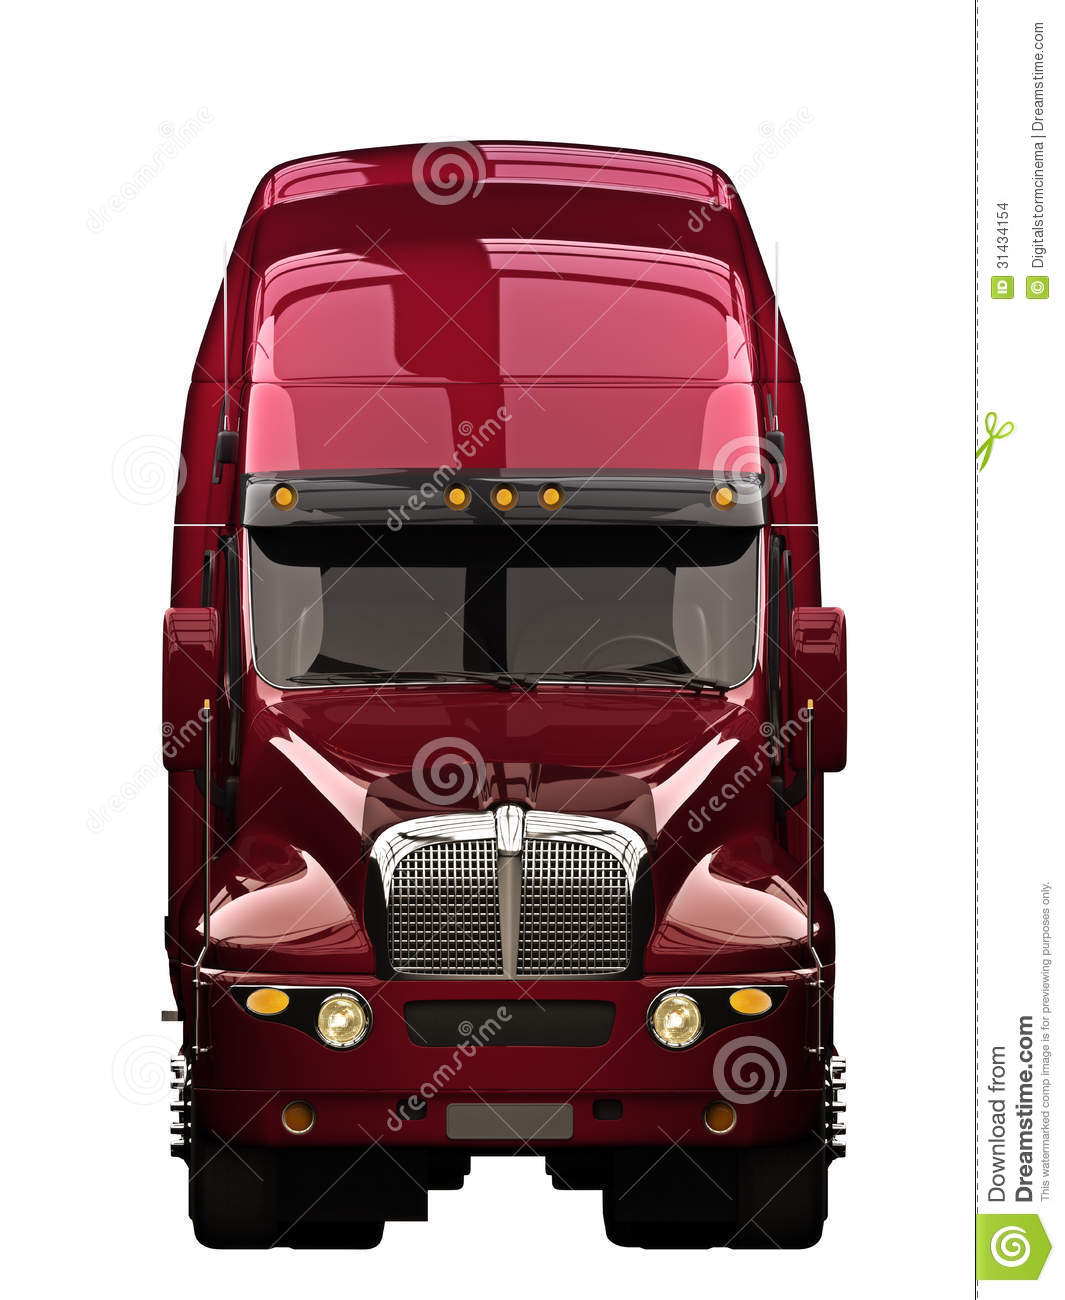 Semi Truck Front View Stock Images - Image: 31434154